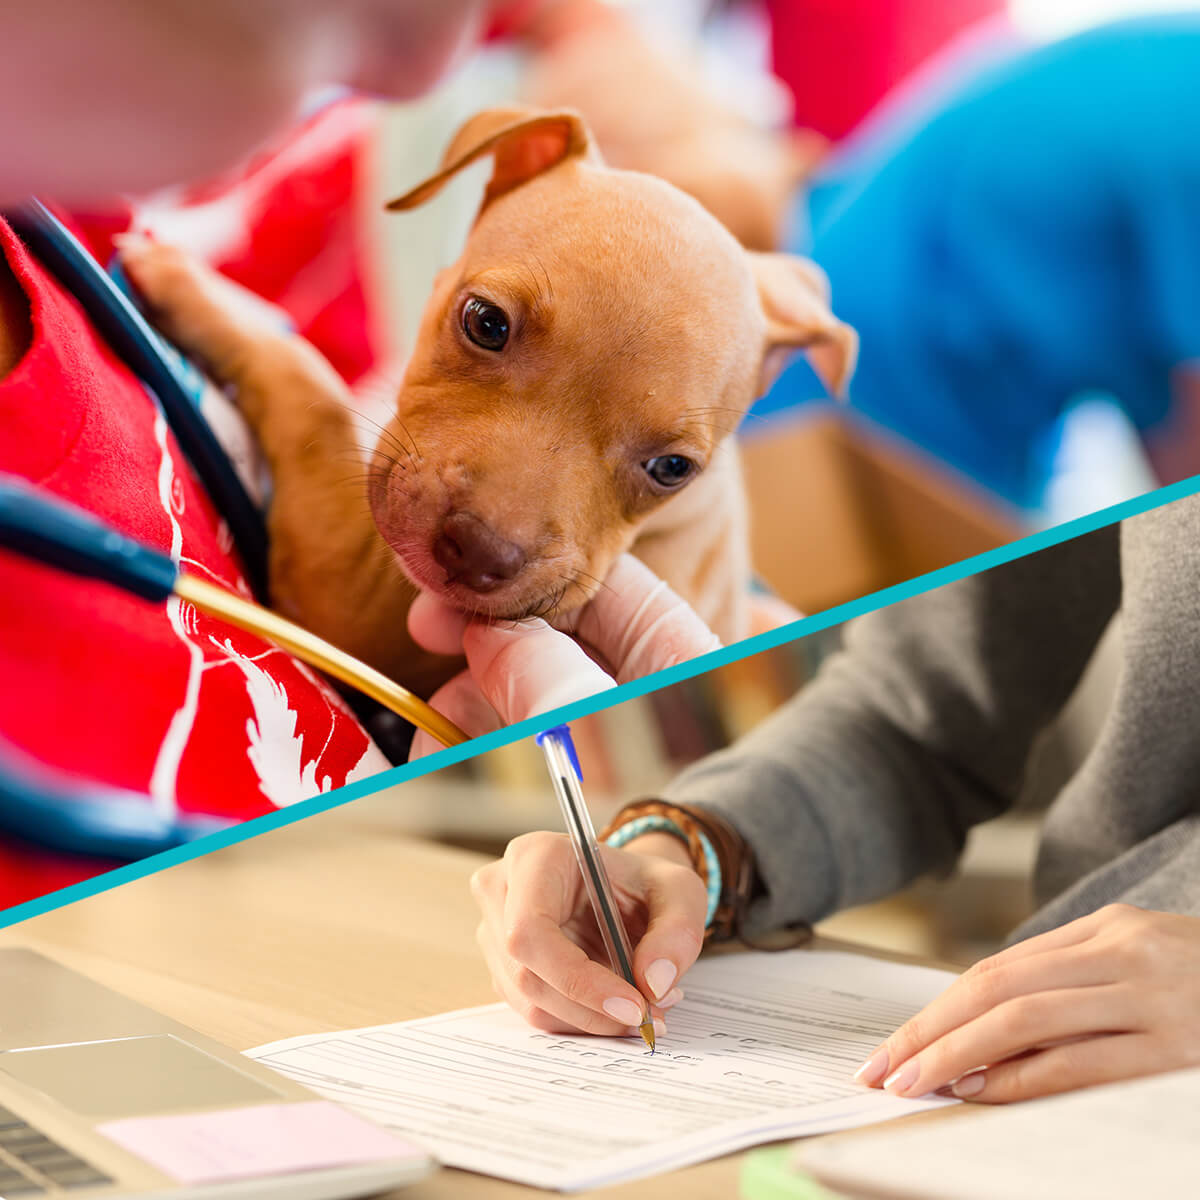 Banner image showcases both the process of application and a vet working with an animal.